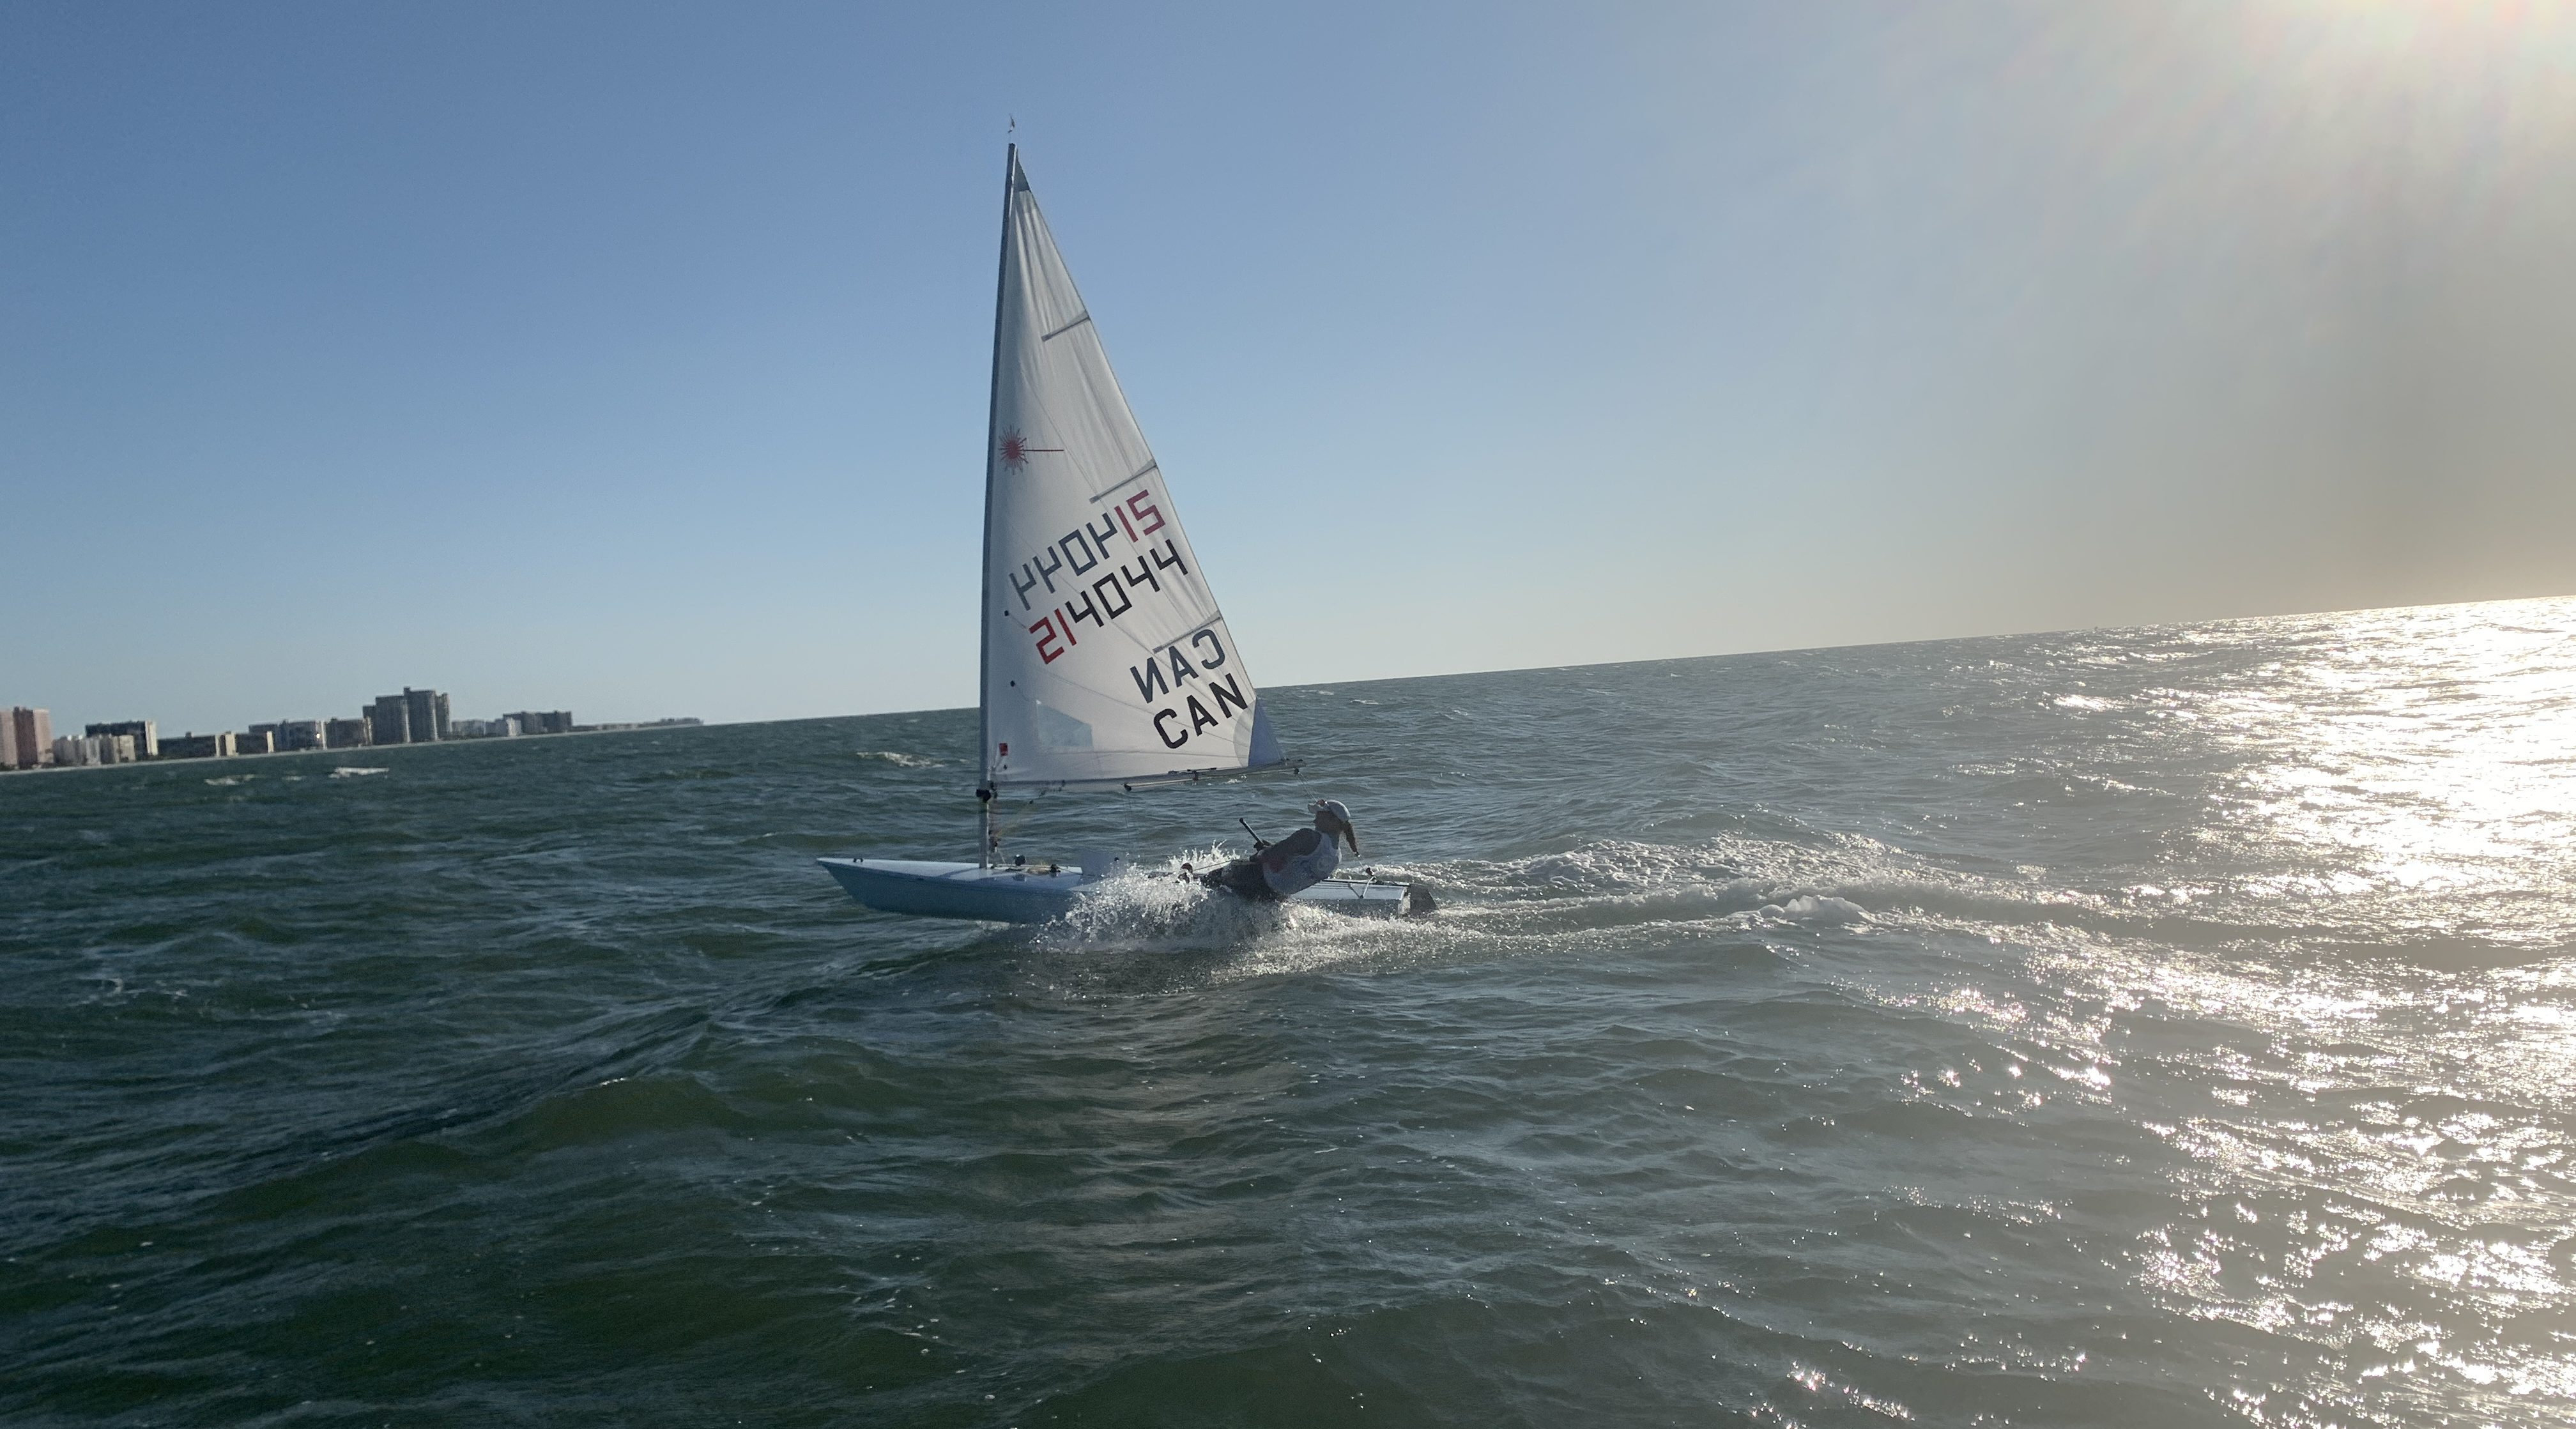 Wide shot of a sailor on the water